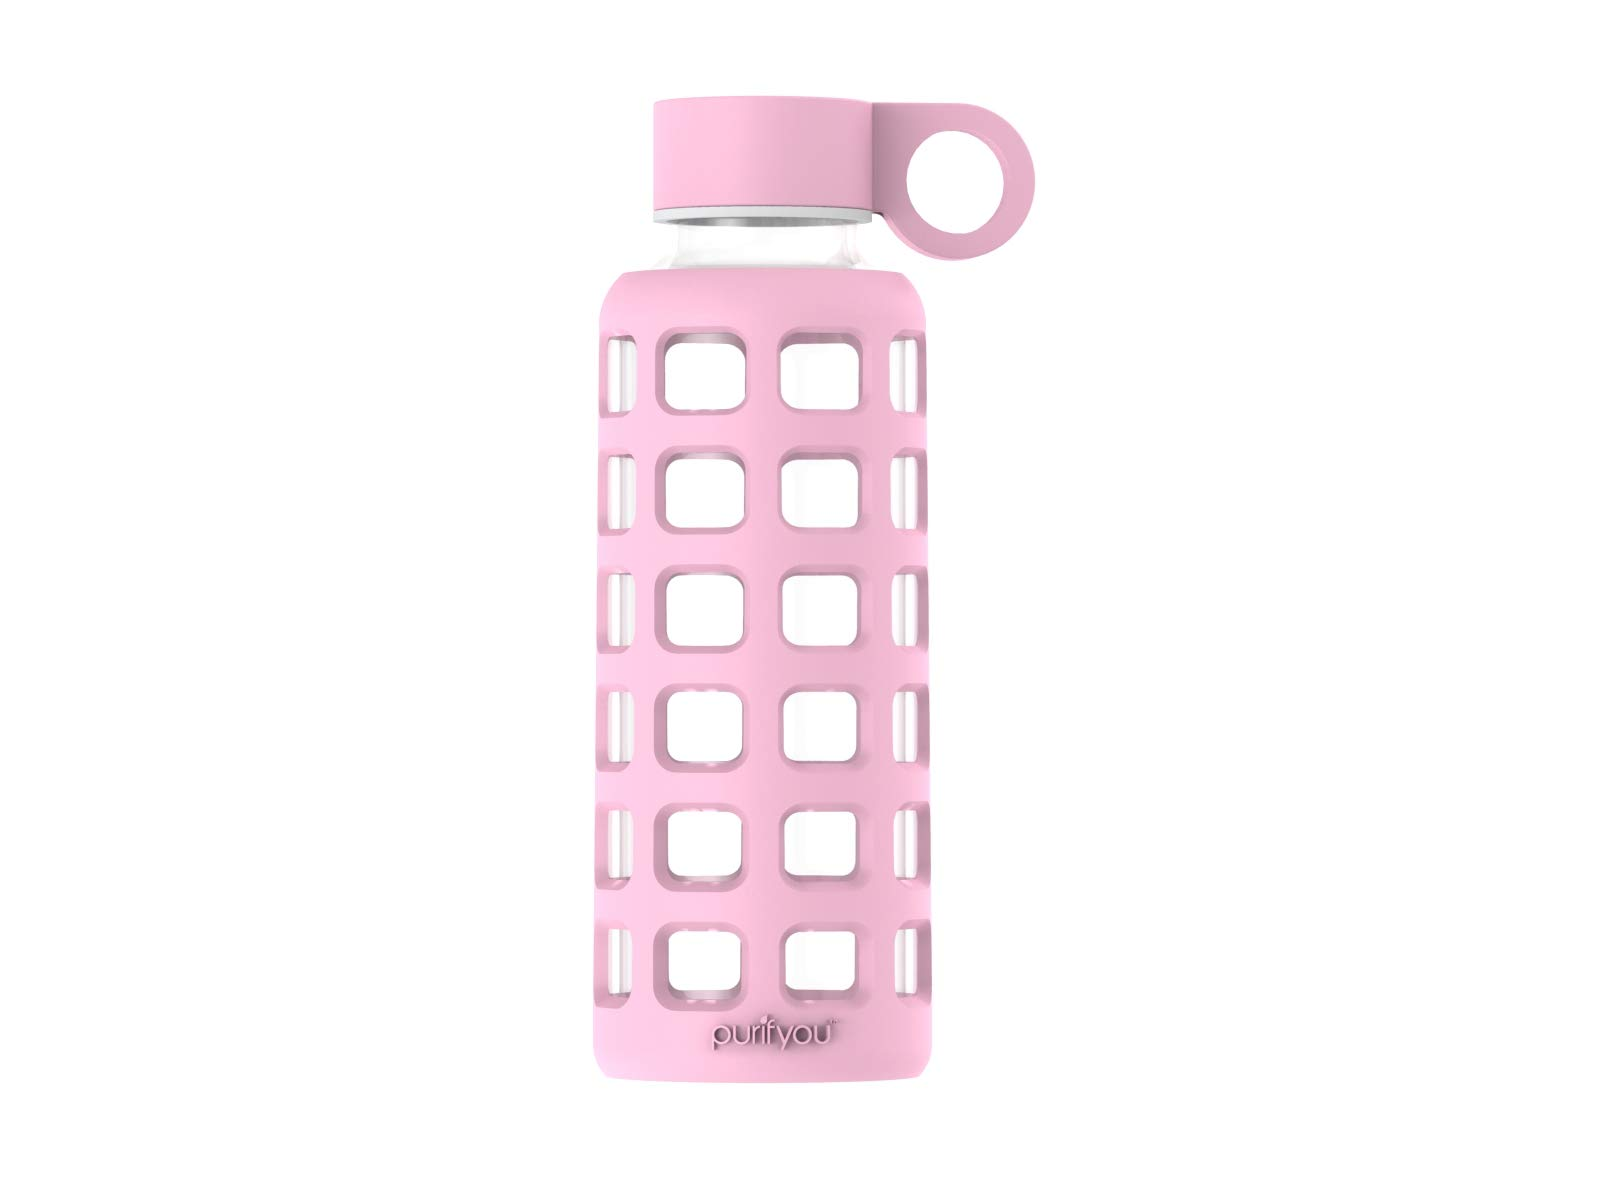 purifyou Premium Glass Water Bottle with Silicone Sleeve & Stainless Steel Lid Insert, 12/22 / 32 oz (Misty Rose, 12 oz)